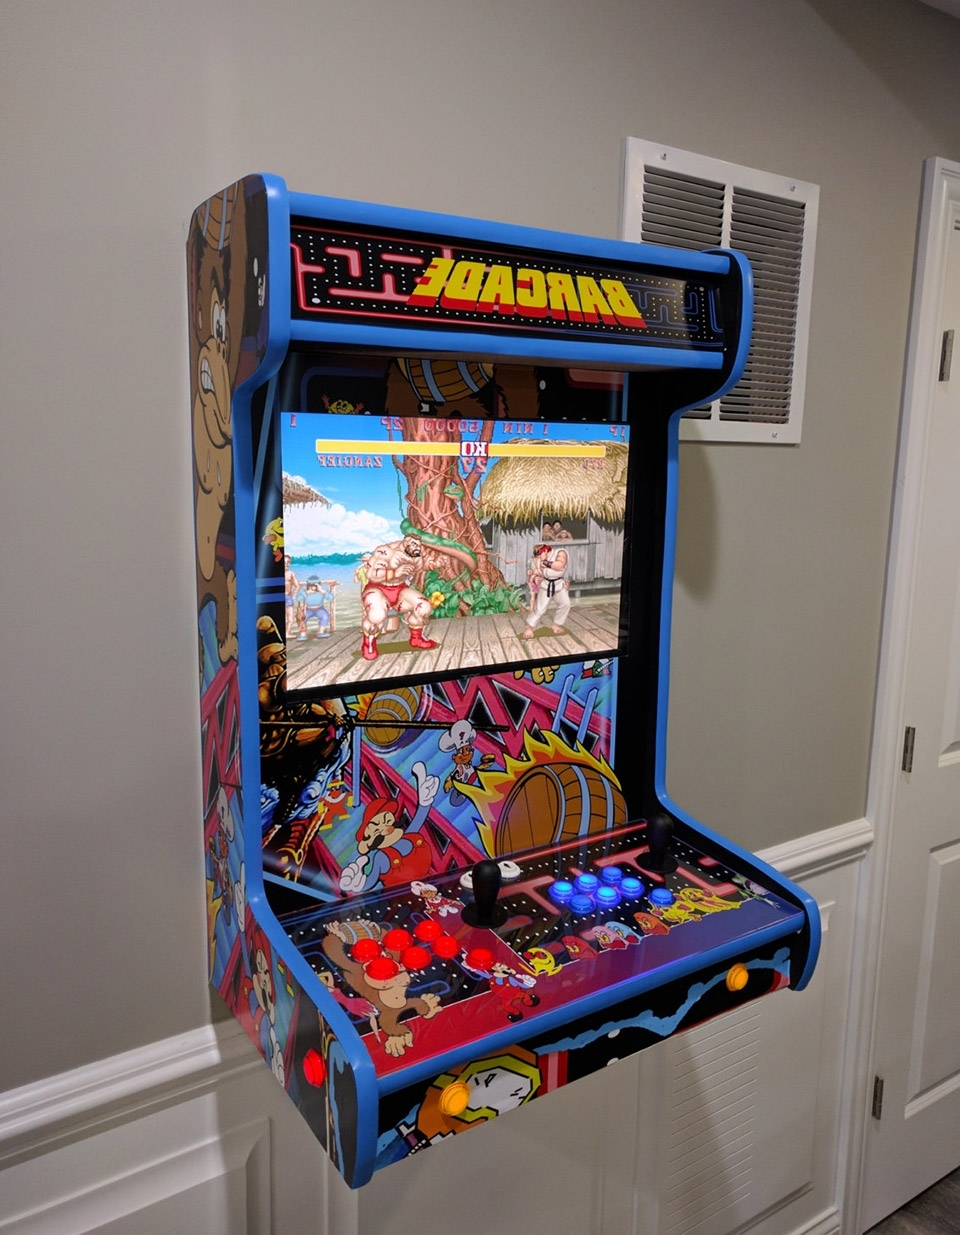 2017 Arcade Wall Art Pertaining To These Wall Mounted Arcade Cabinets Save Quarters And Space – Technabob (View 2 of 15)